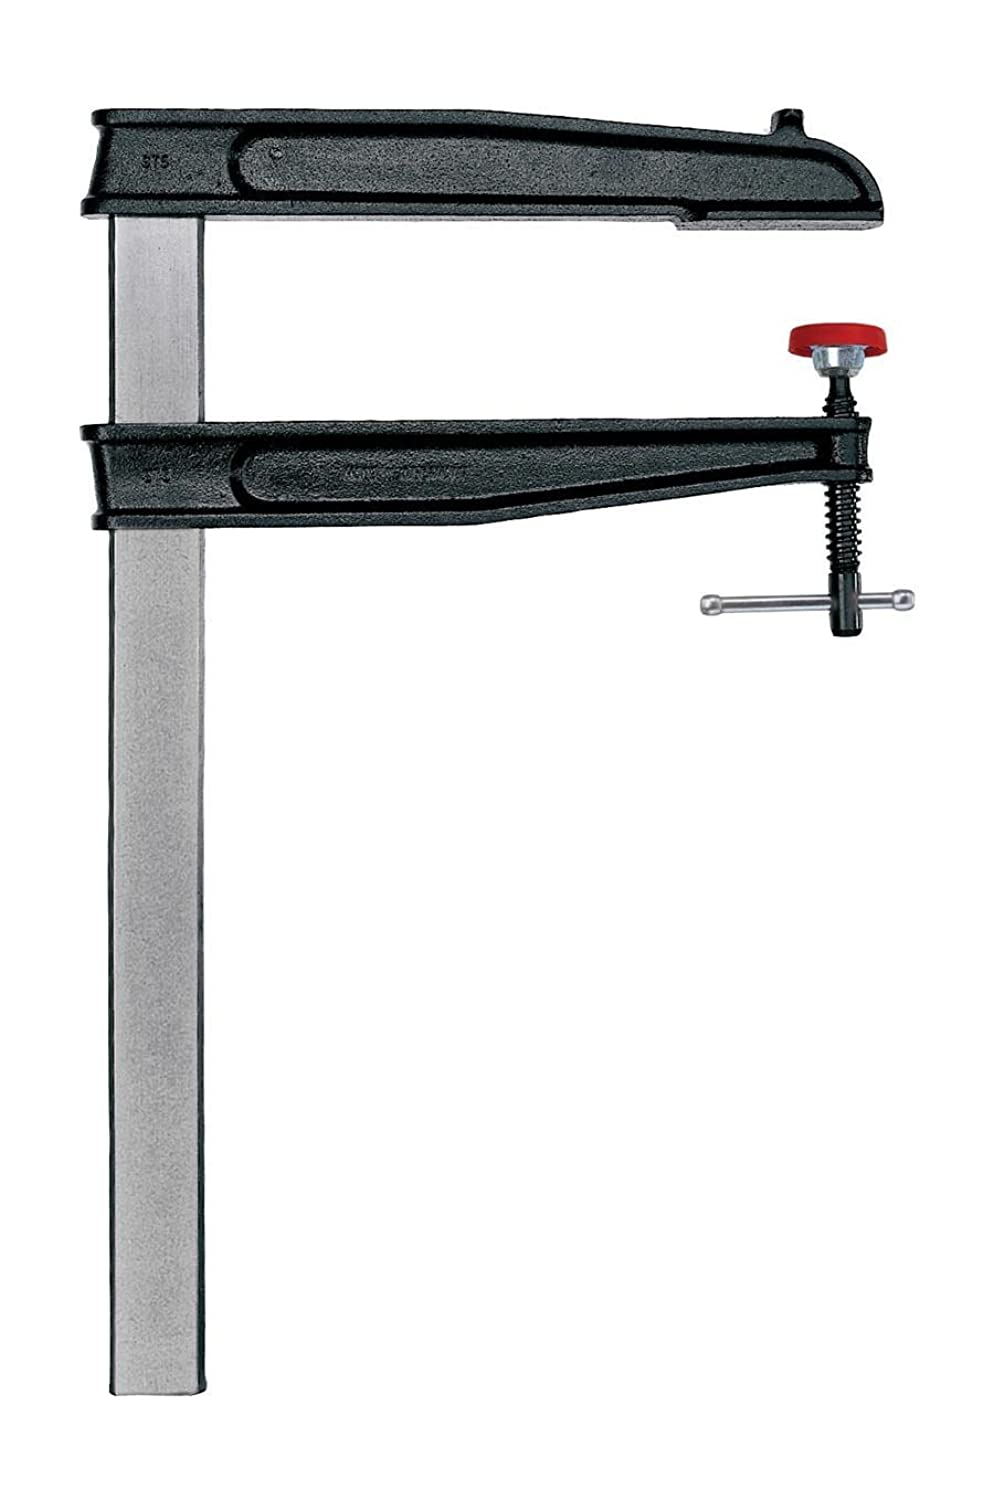 Bessey CDS24-10WP 10-Inch Throat x 24-Inch Opening Heavy Duty Tradesmen Bar Clamp